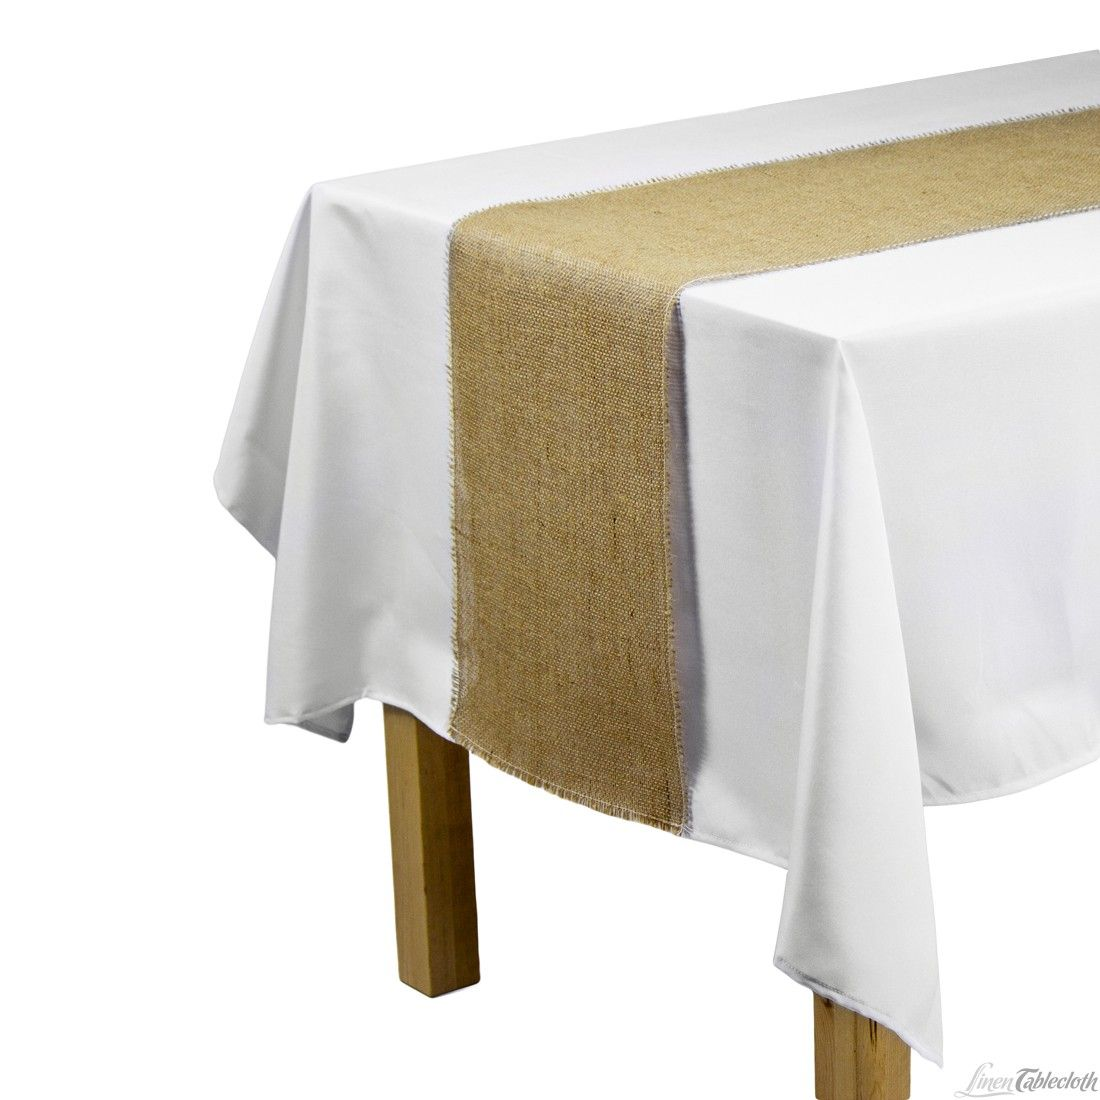 Buy 12 5 X 120 Inch Jute Table Runner With Fringe Edge At Linentablecloth These Burlap Runners Are Great Burlap Table Runners Linen Table Runner Table Runners